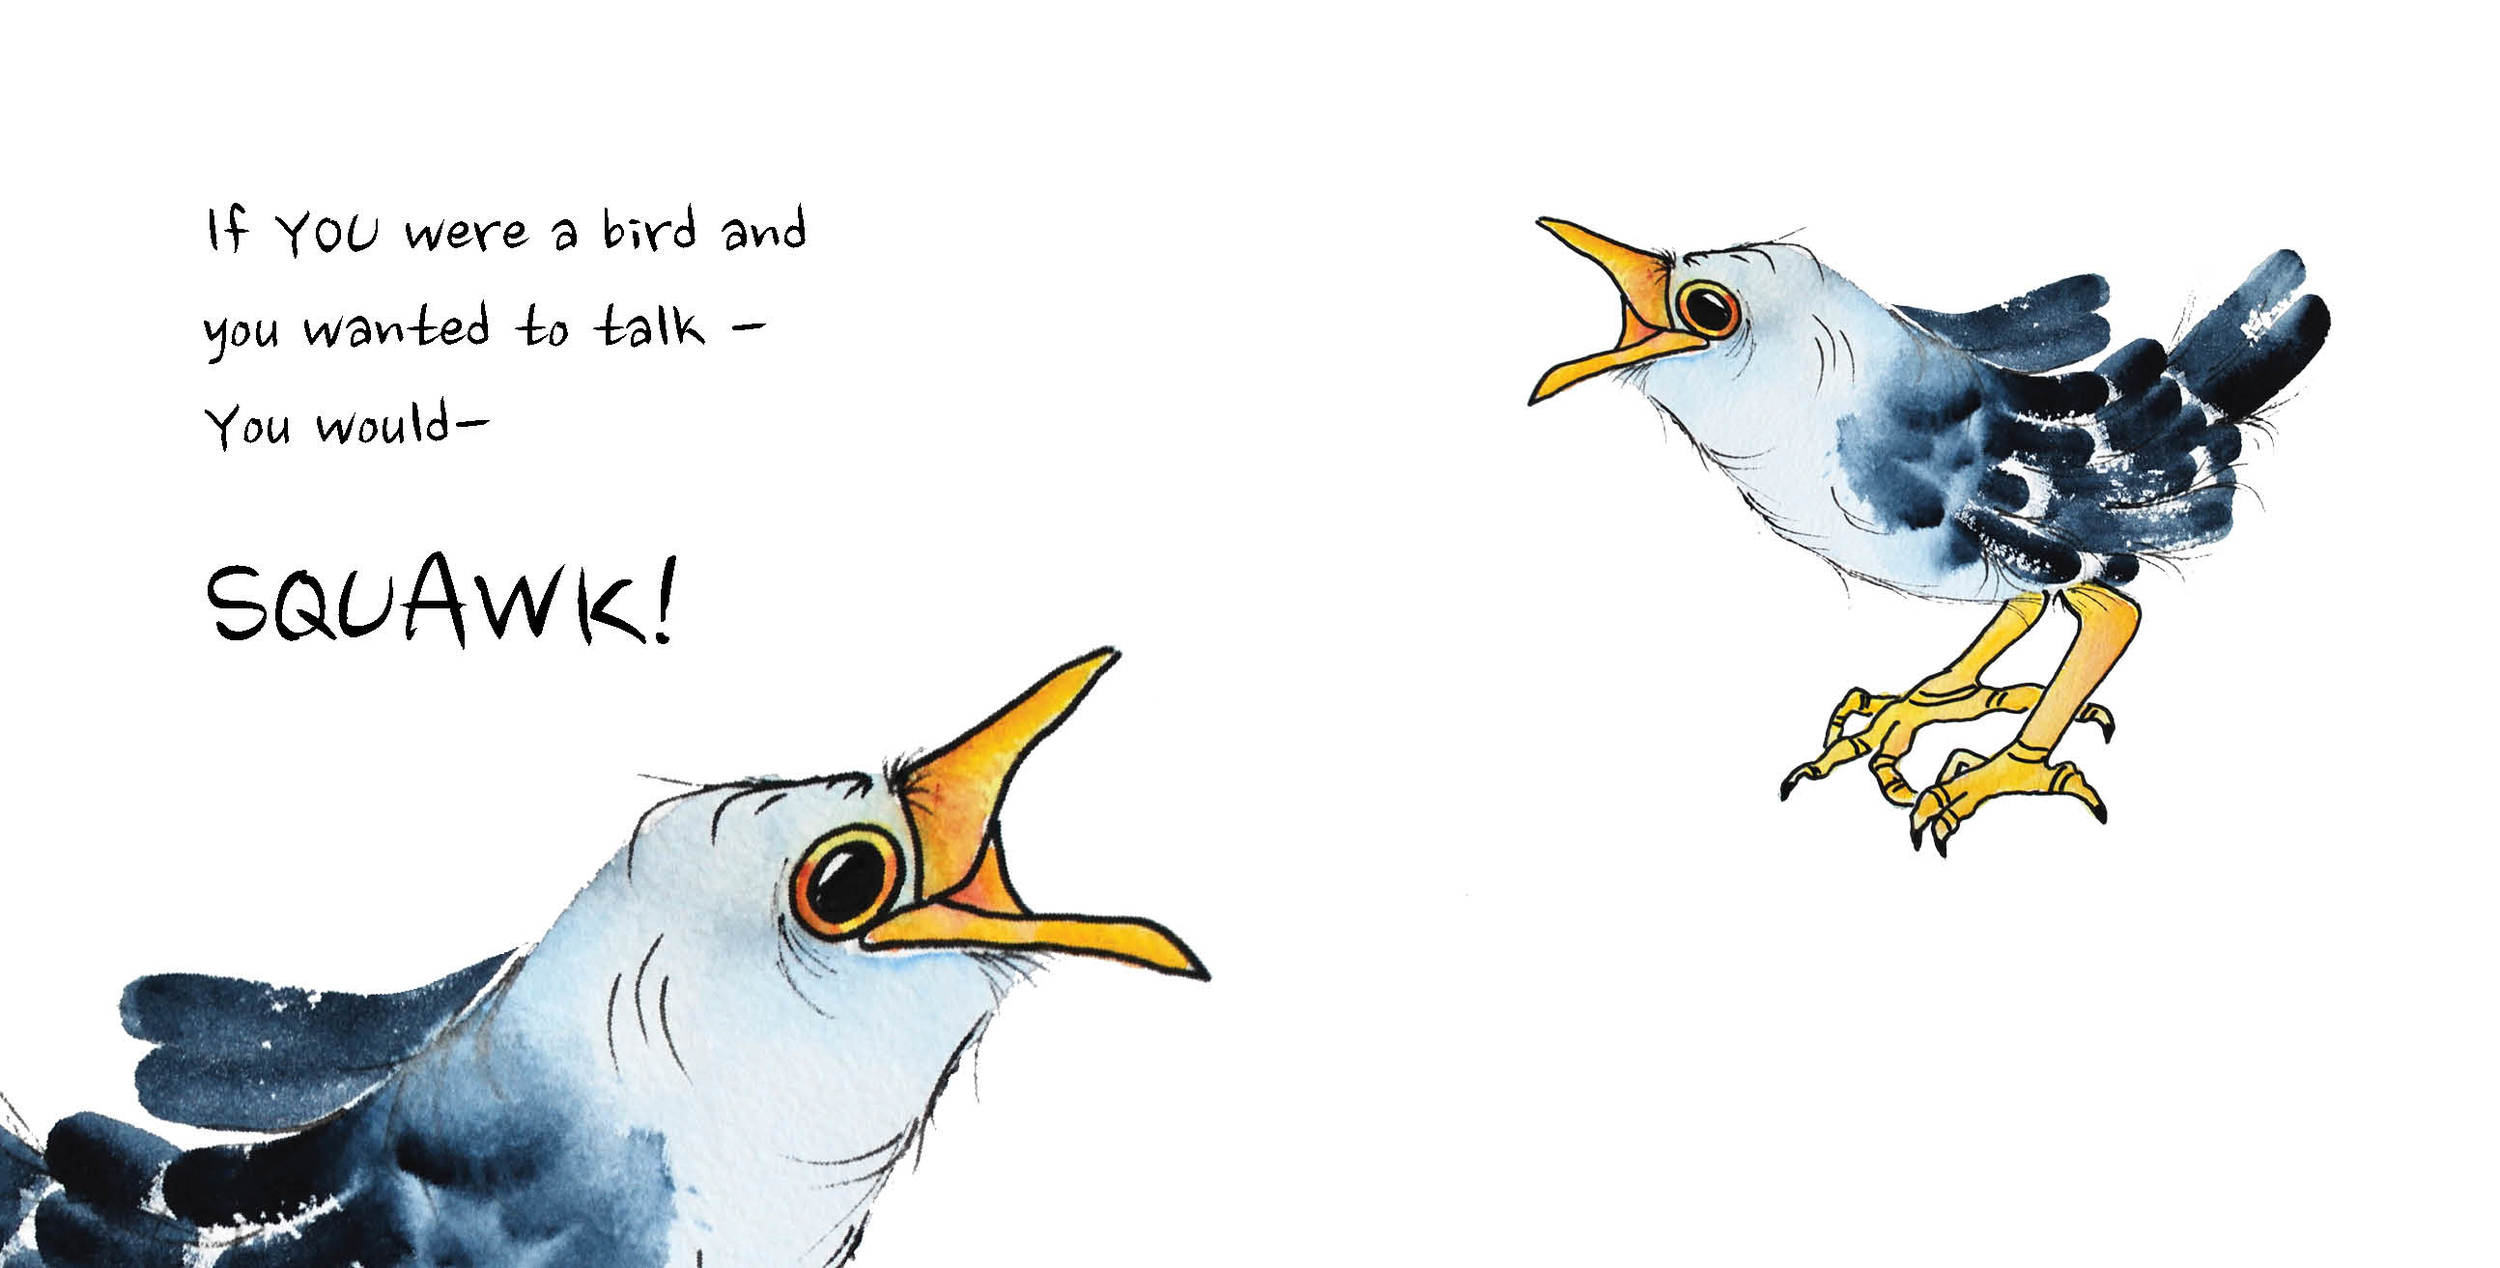 If You Were a Bird 3 pages5.jpg